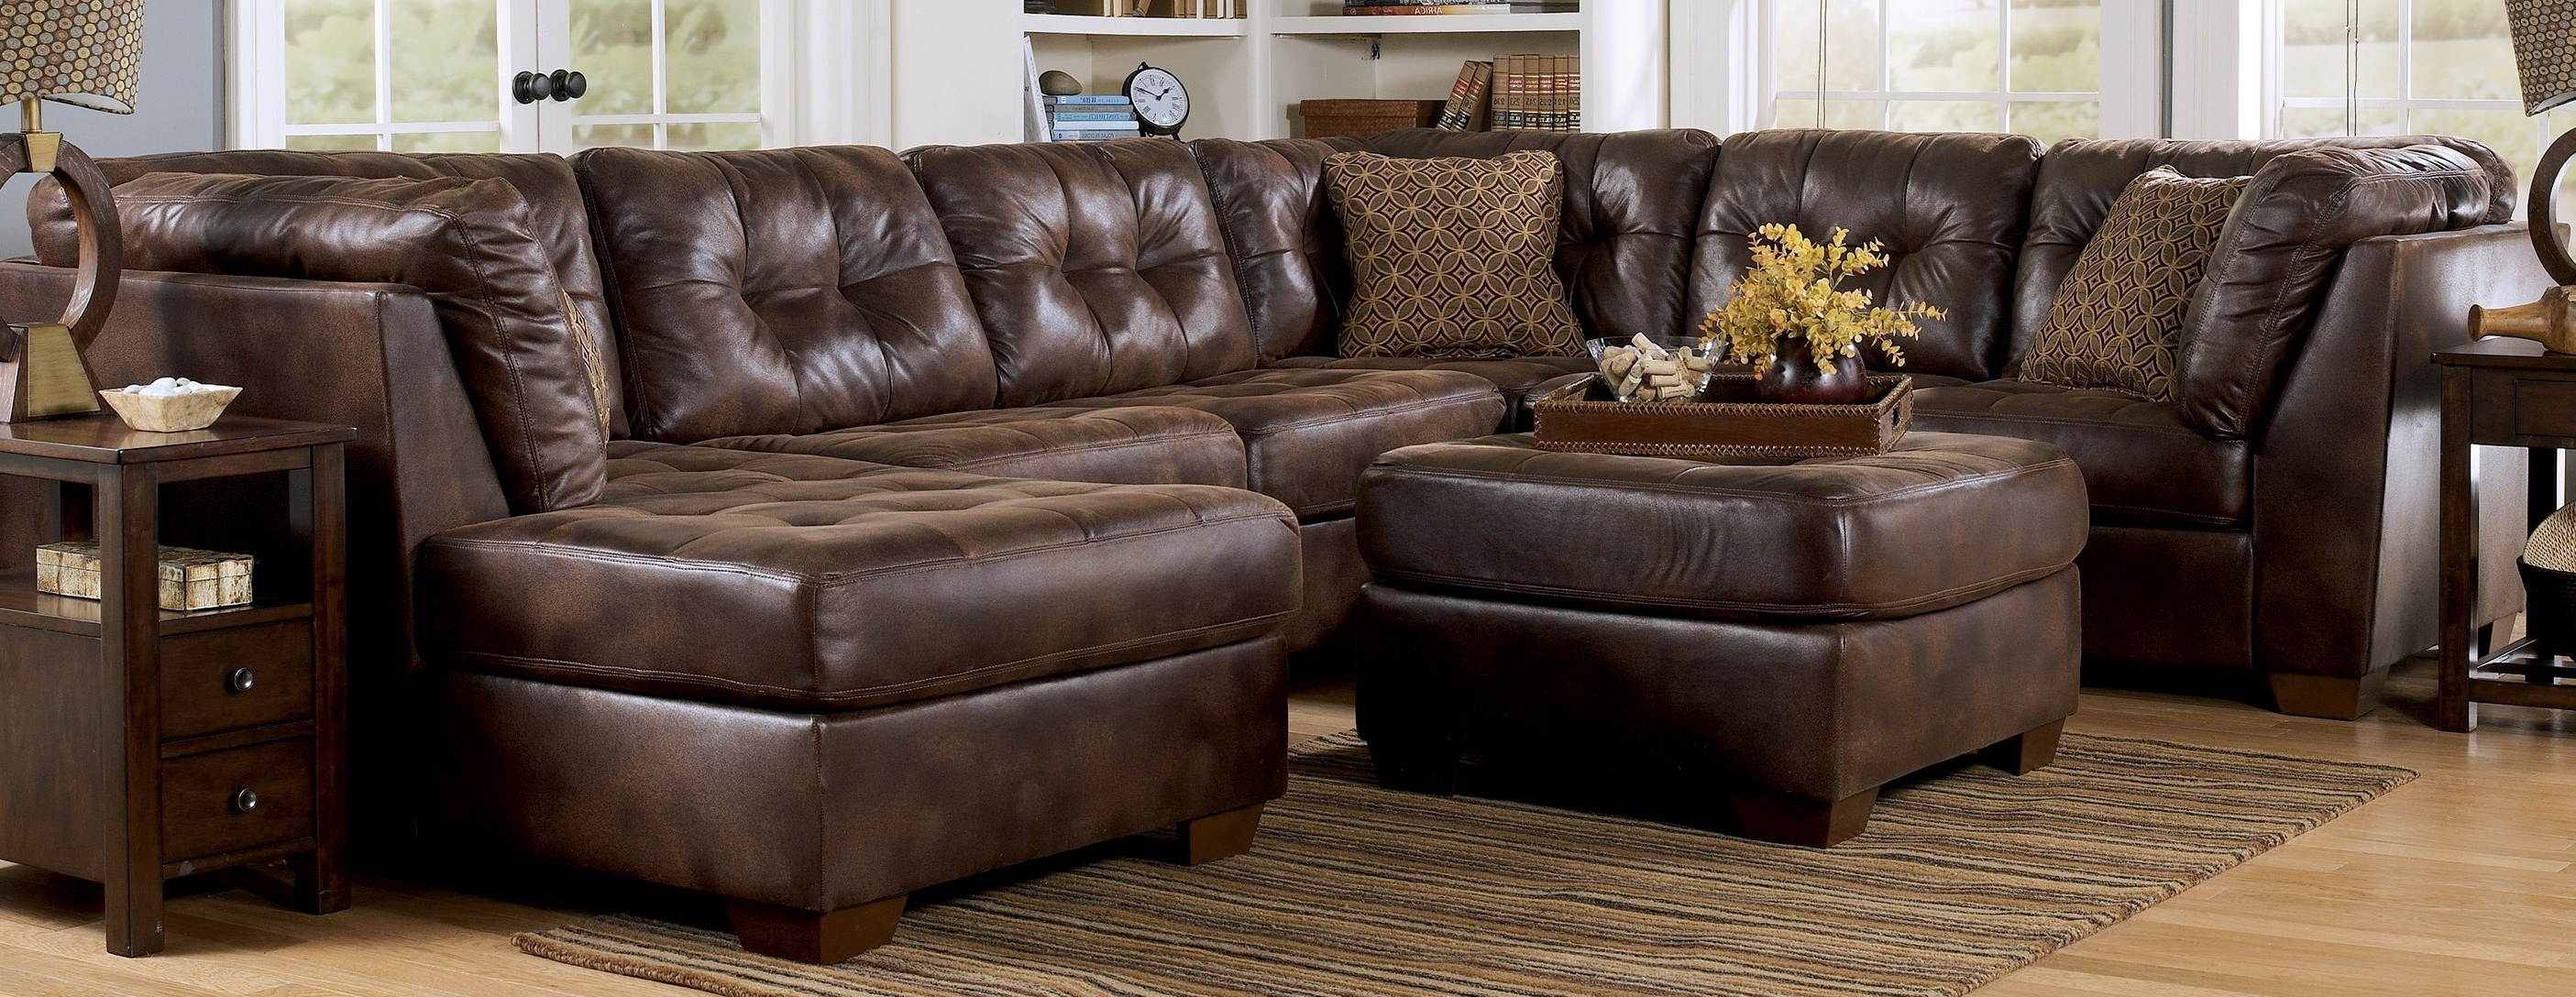 Luxury Leather Sectional Sleeper Sofa With Chaise 34 Contemporary For Widely Used Leather Sectionals With Chaise (View 8 of 15)